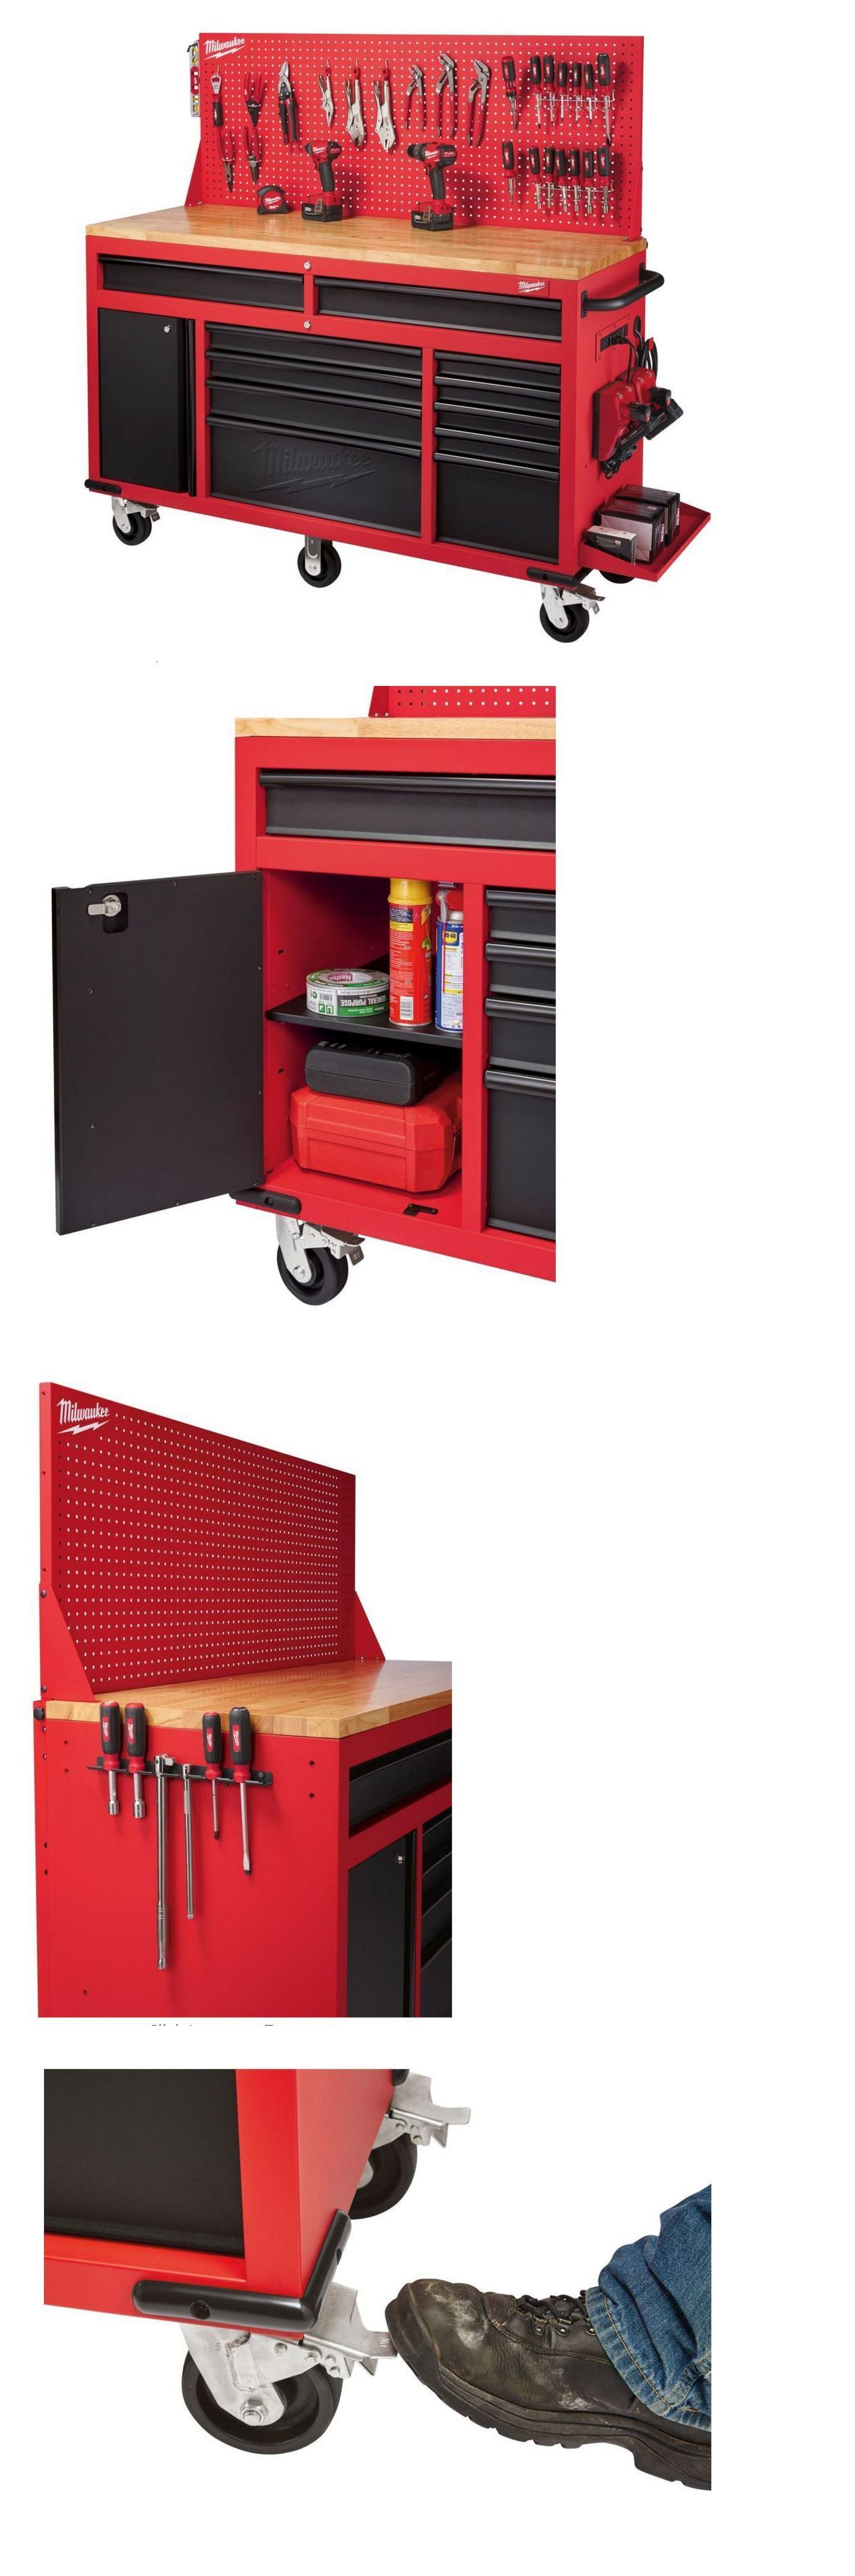 Boxes and Cabinets Tool Chest Wheels Rolling Workbench